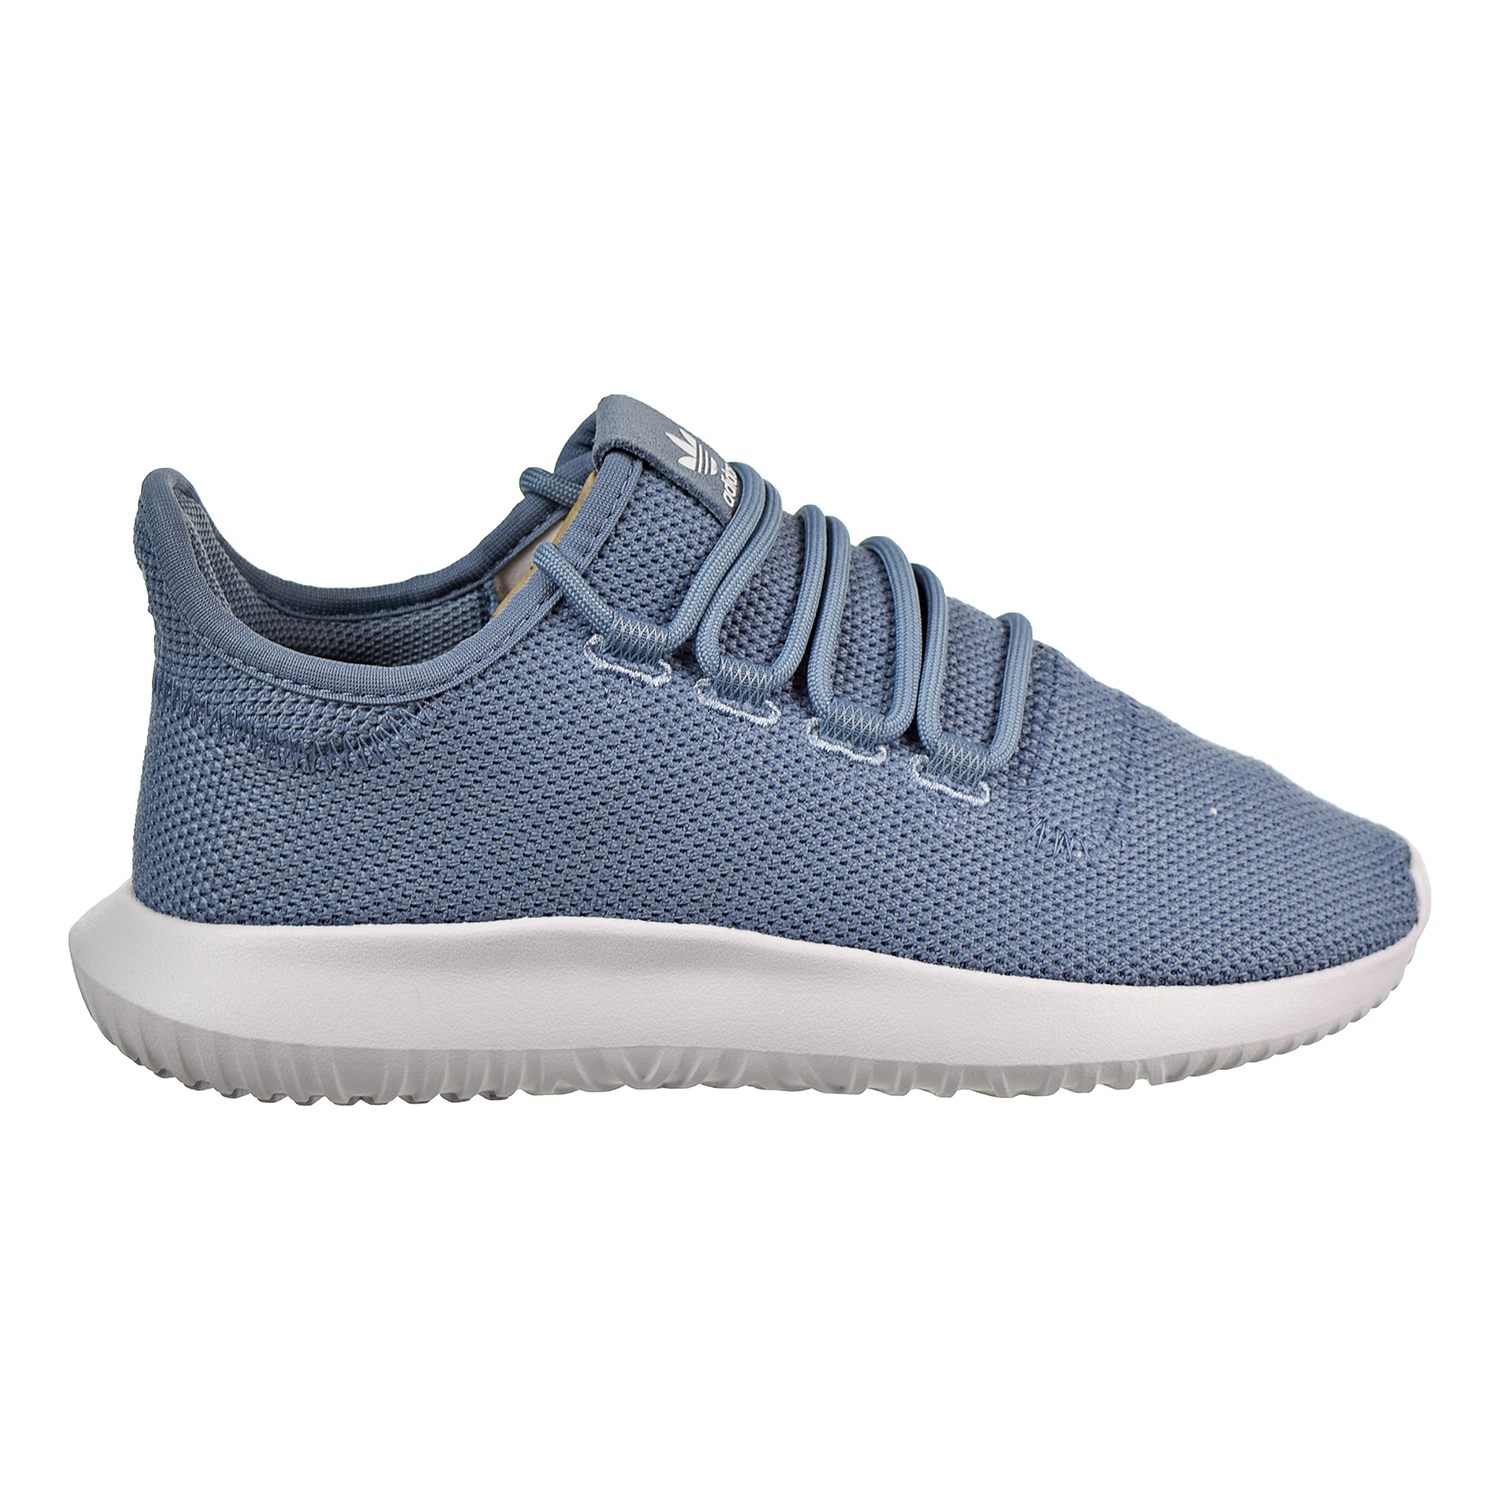 Adidas Tubular Shadow J Big Kid's Shoes Raw GreyWhite